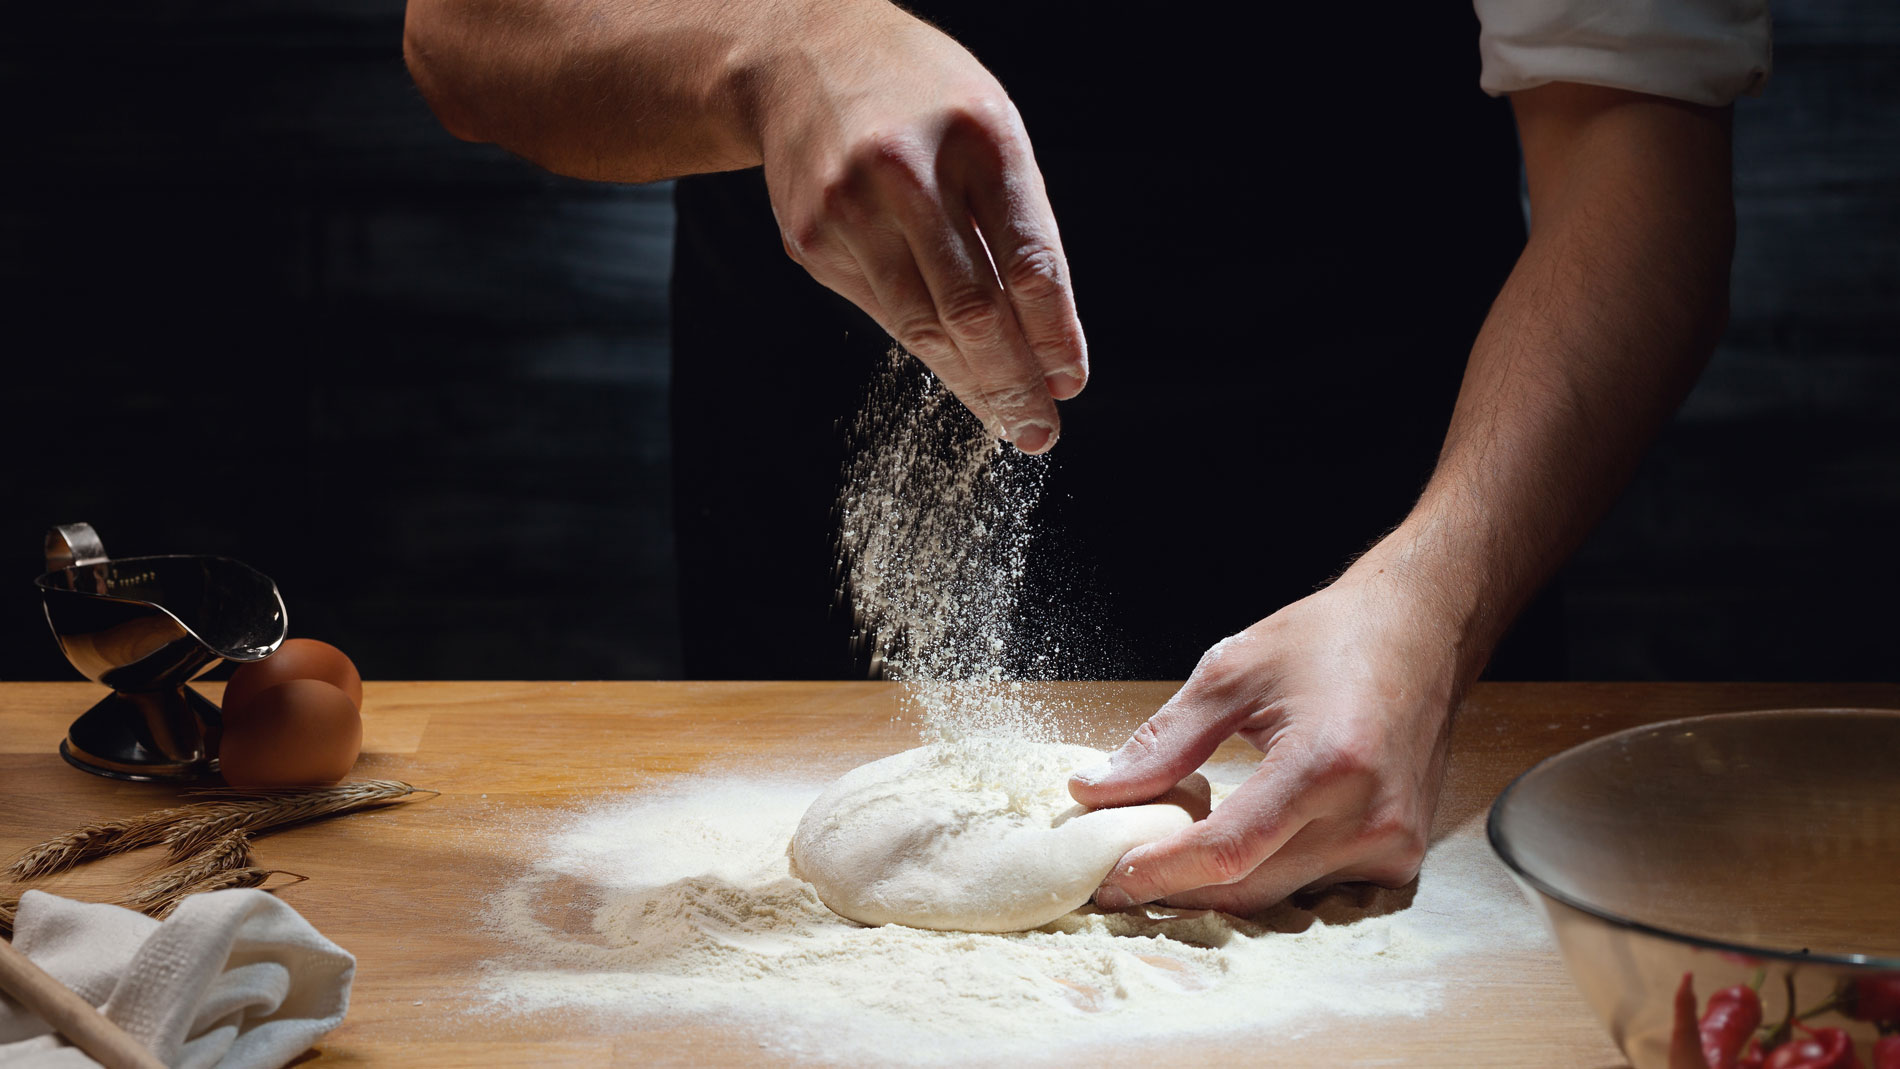 How to Buy Better Flour for Home Baking Projects